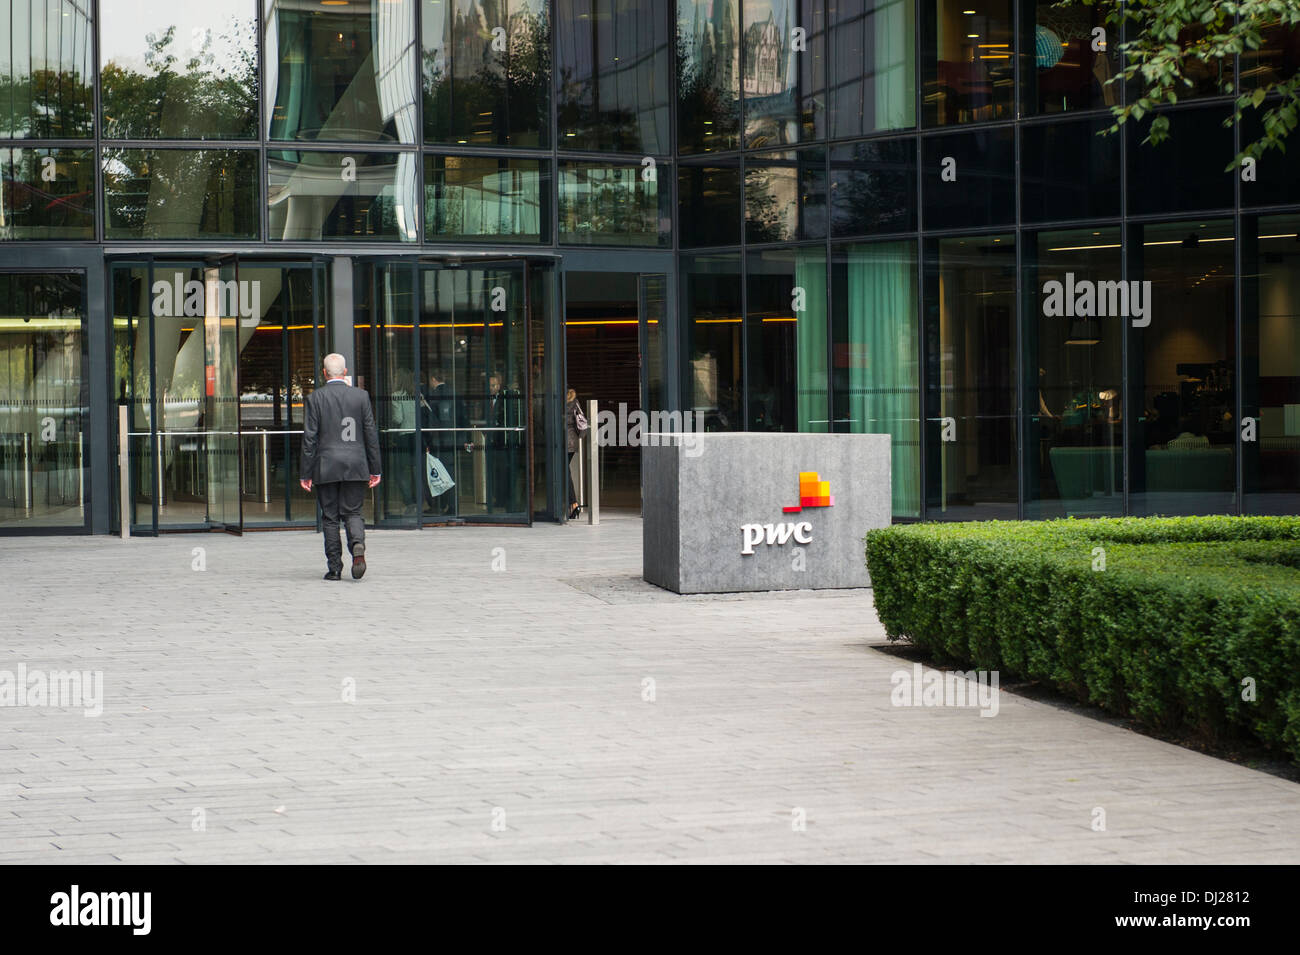 City of London Southbank South Bank More Riverside modern contemporary office offices building block entrance PWC Price Waterhouse Coopers sign logo - Stock Image